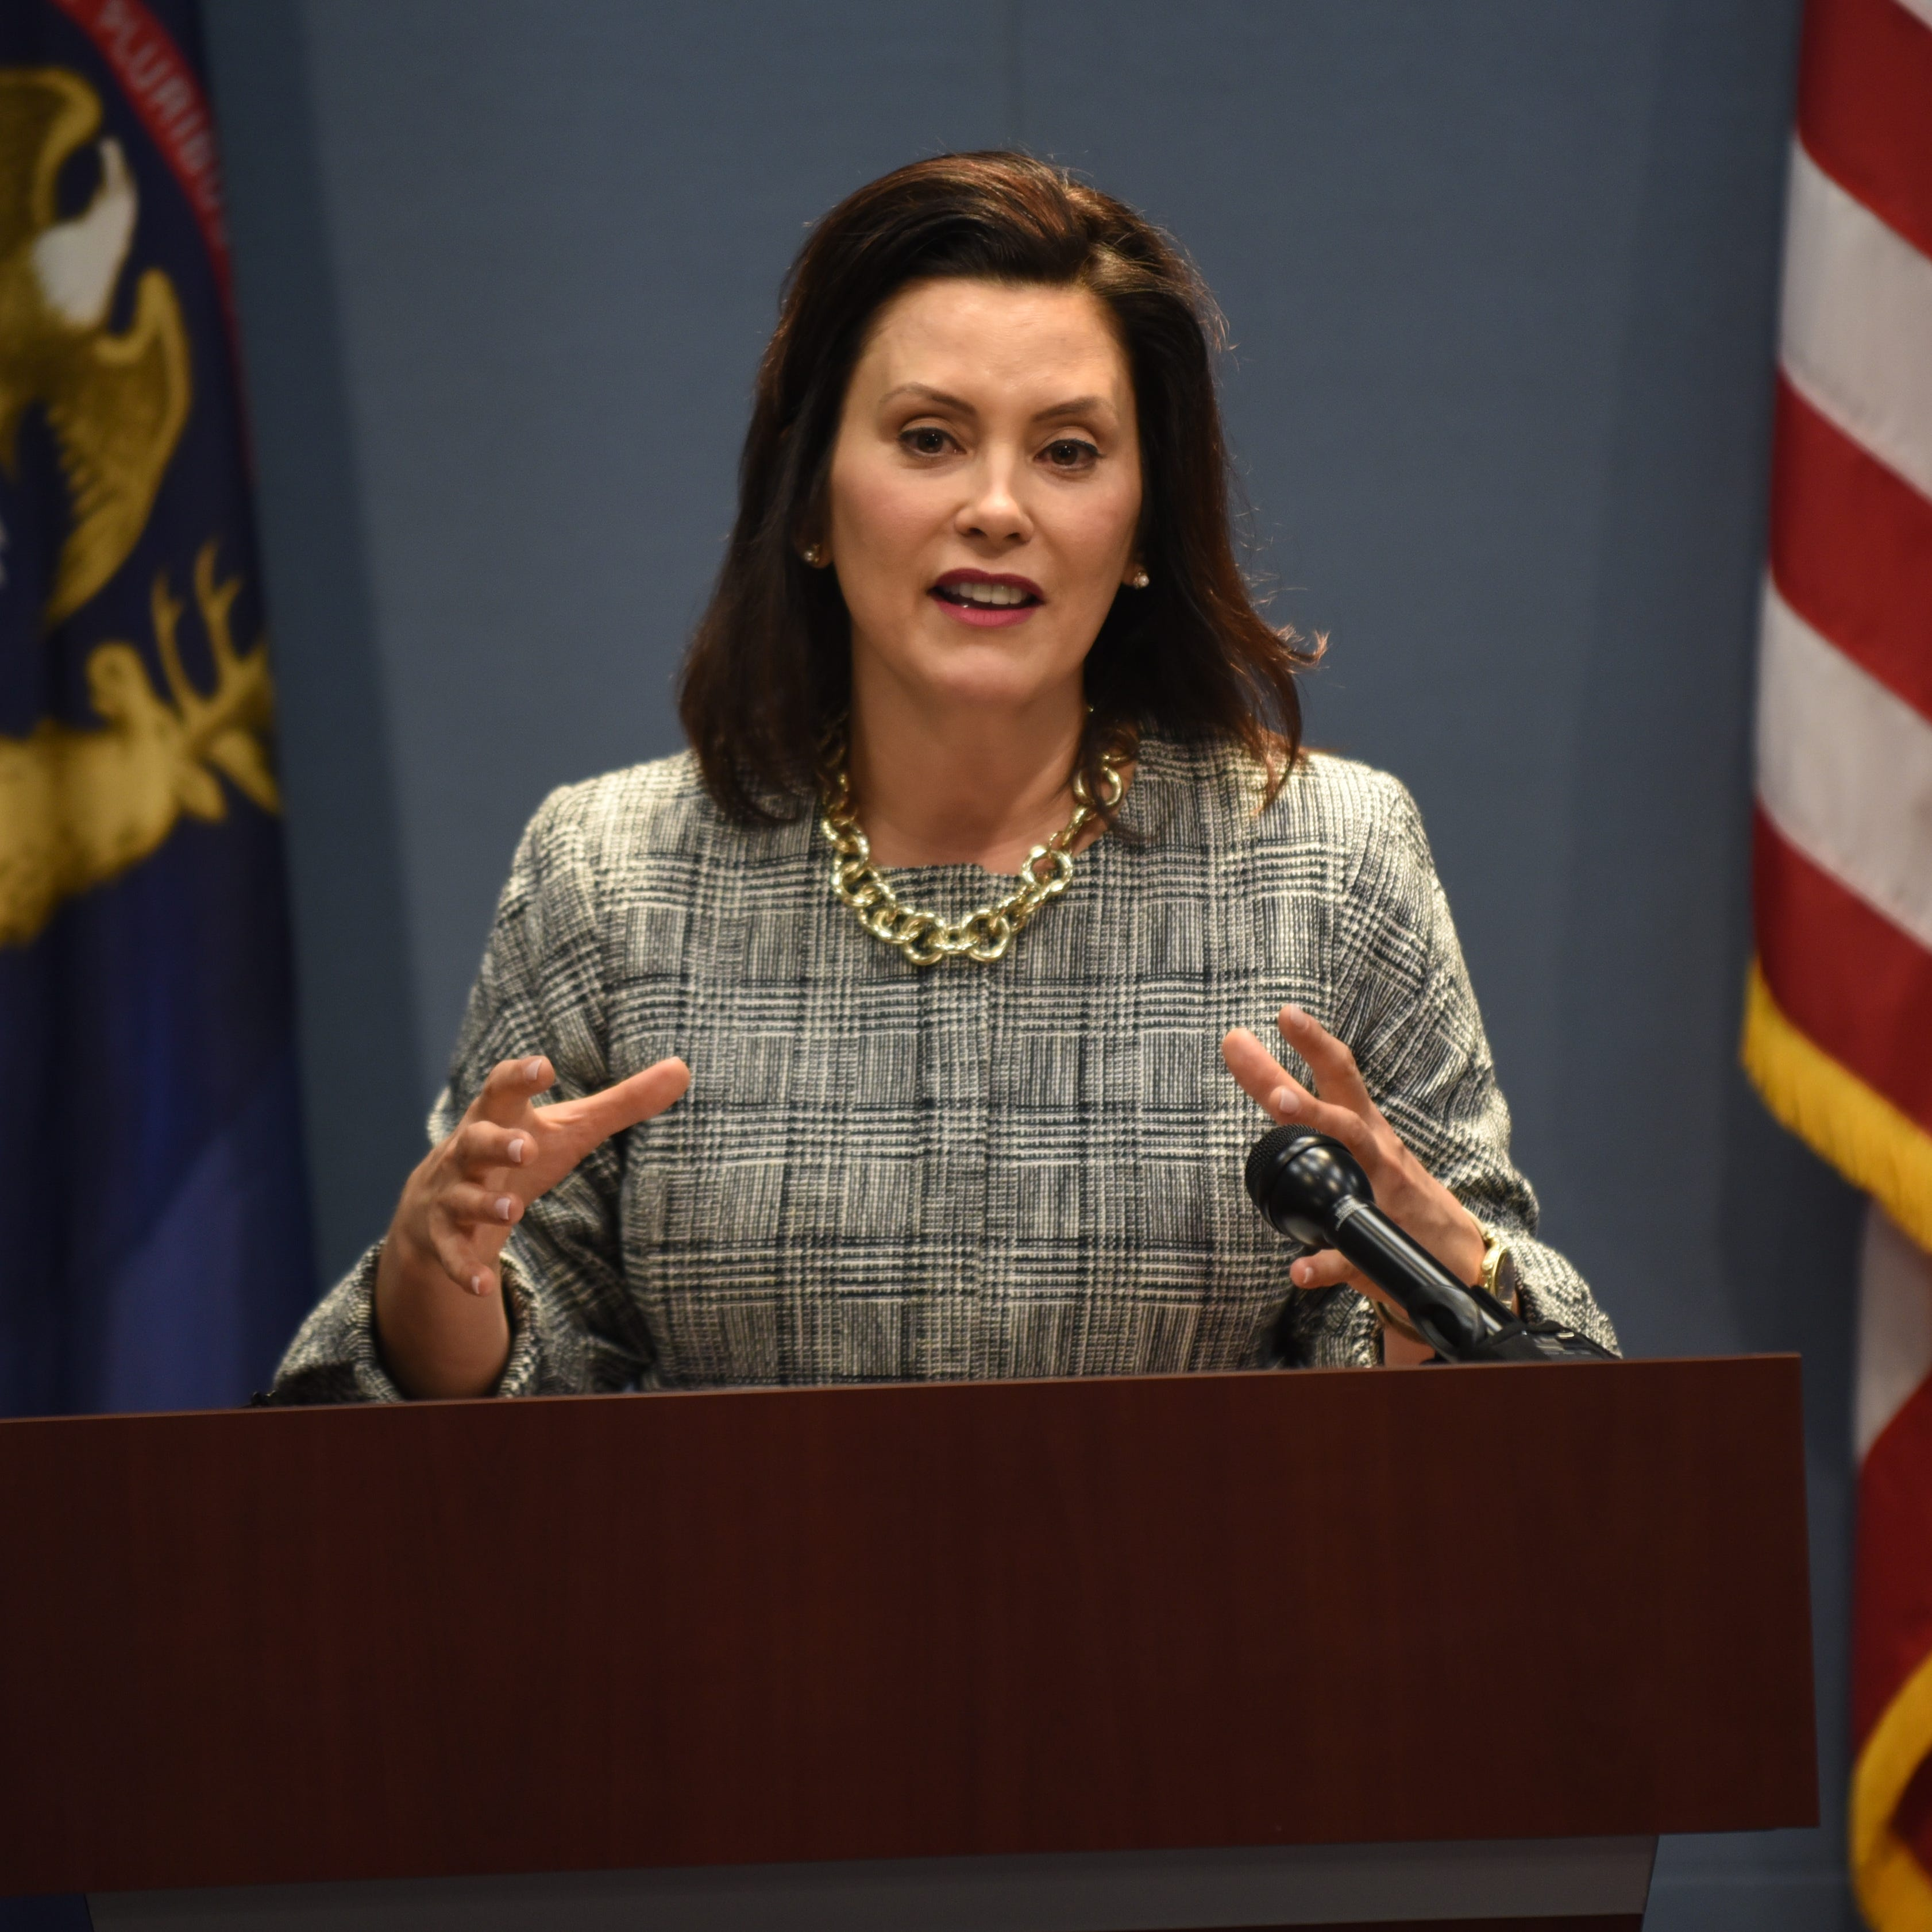 Bankole:  Gov. Whitmer must talk directly to the people